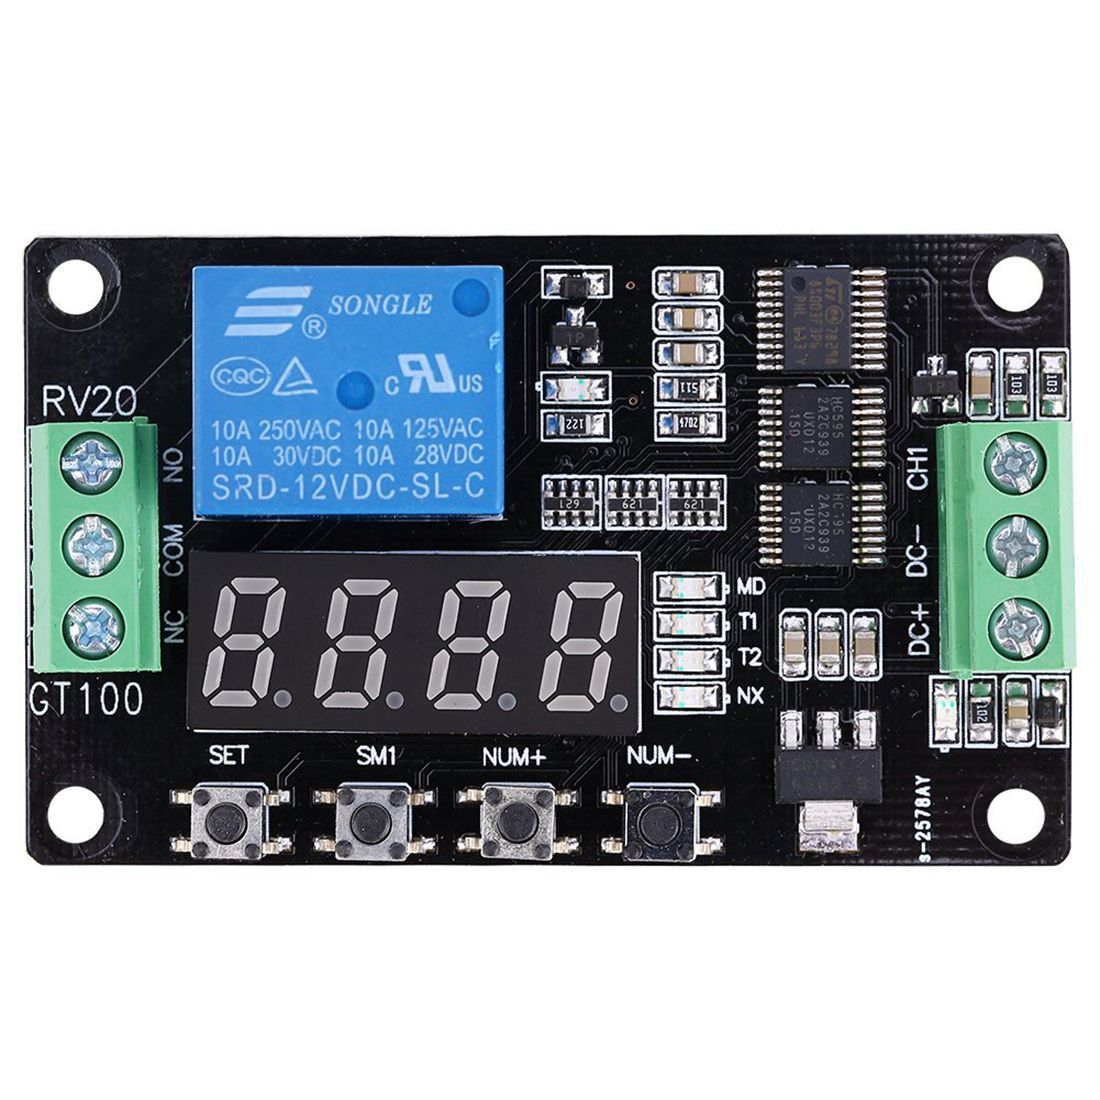 Multifunction Relay Cycle Timer Module,Self-lock Relay PLC Cycle Timer Module Switch Board Power Switch Home Automation Delay dc 12v relay multifunction self lock relay plc cycle timer module delay time switch